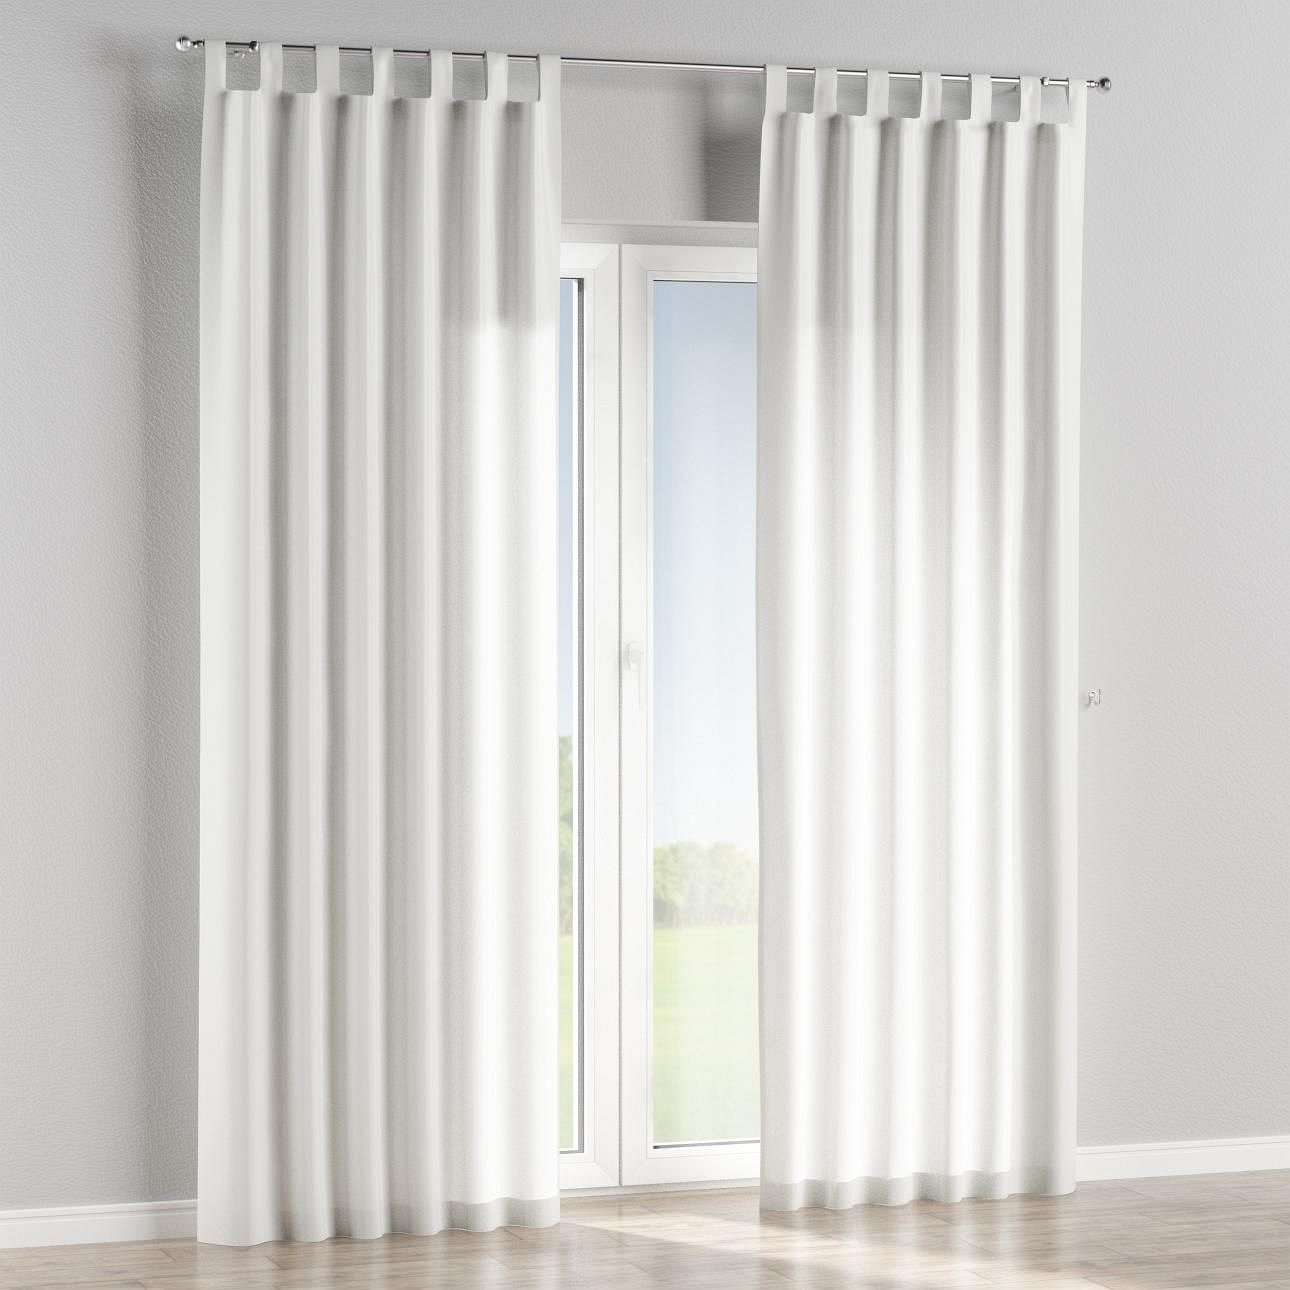 Tab top curtains in collection Milano, fabric: 150-28